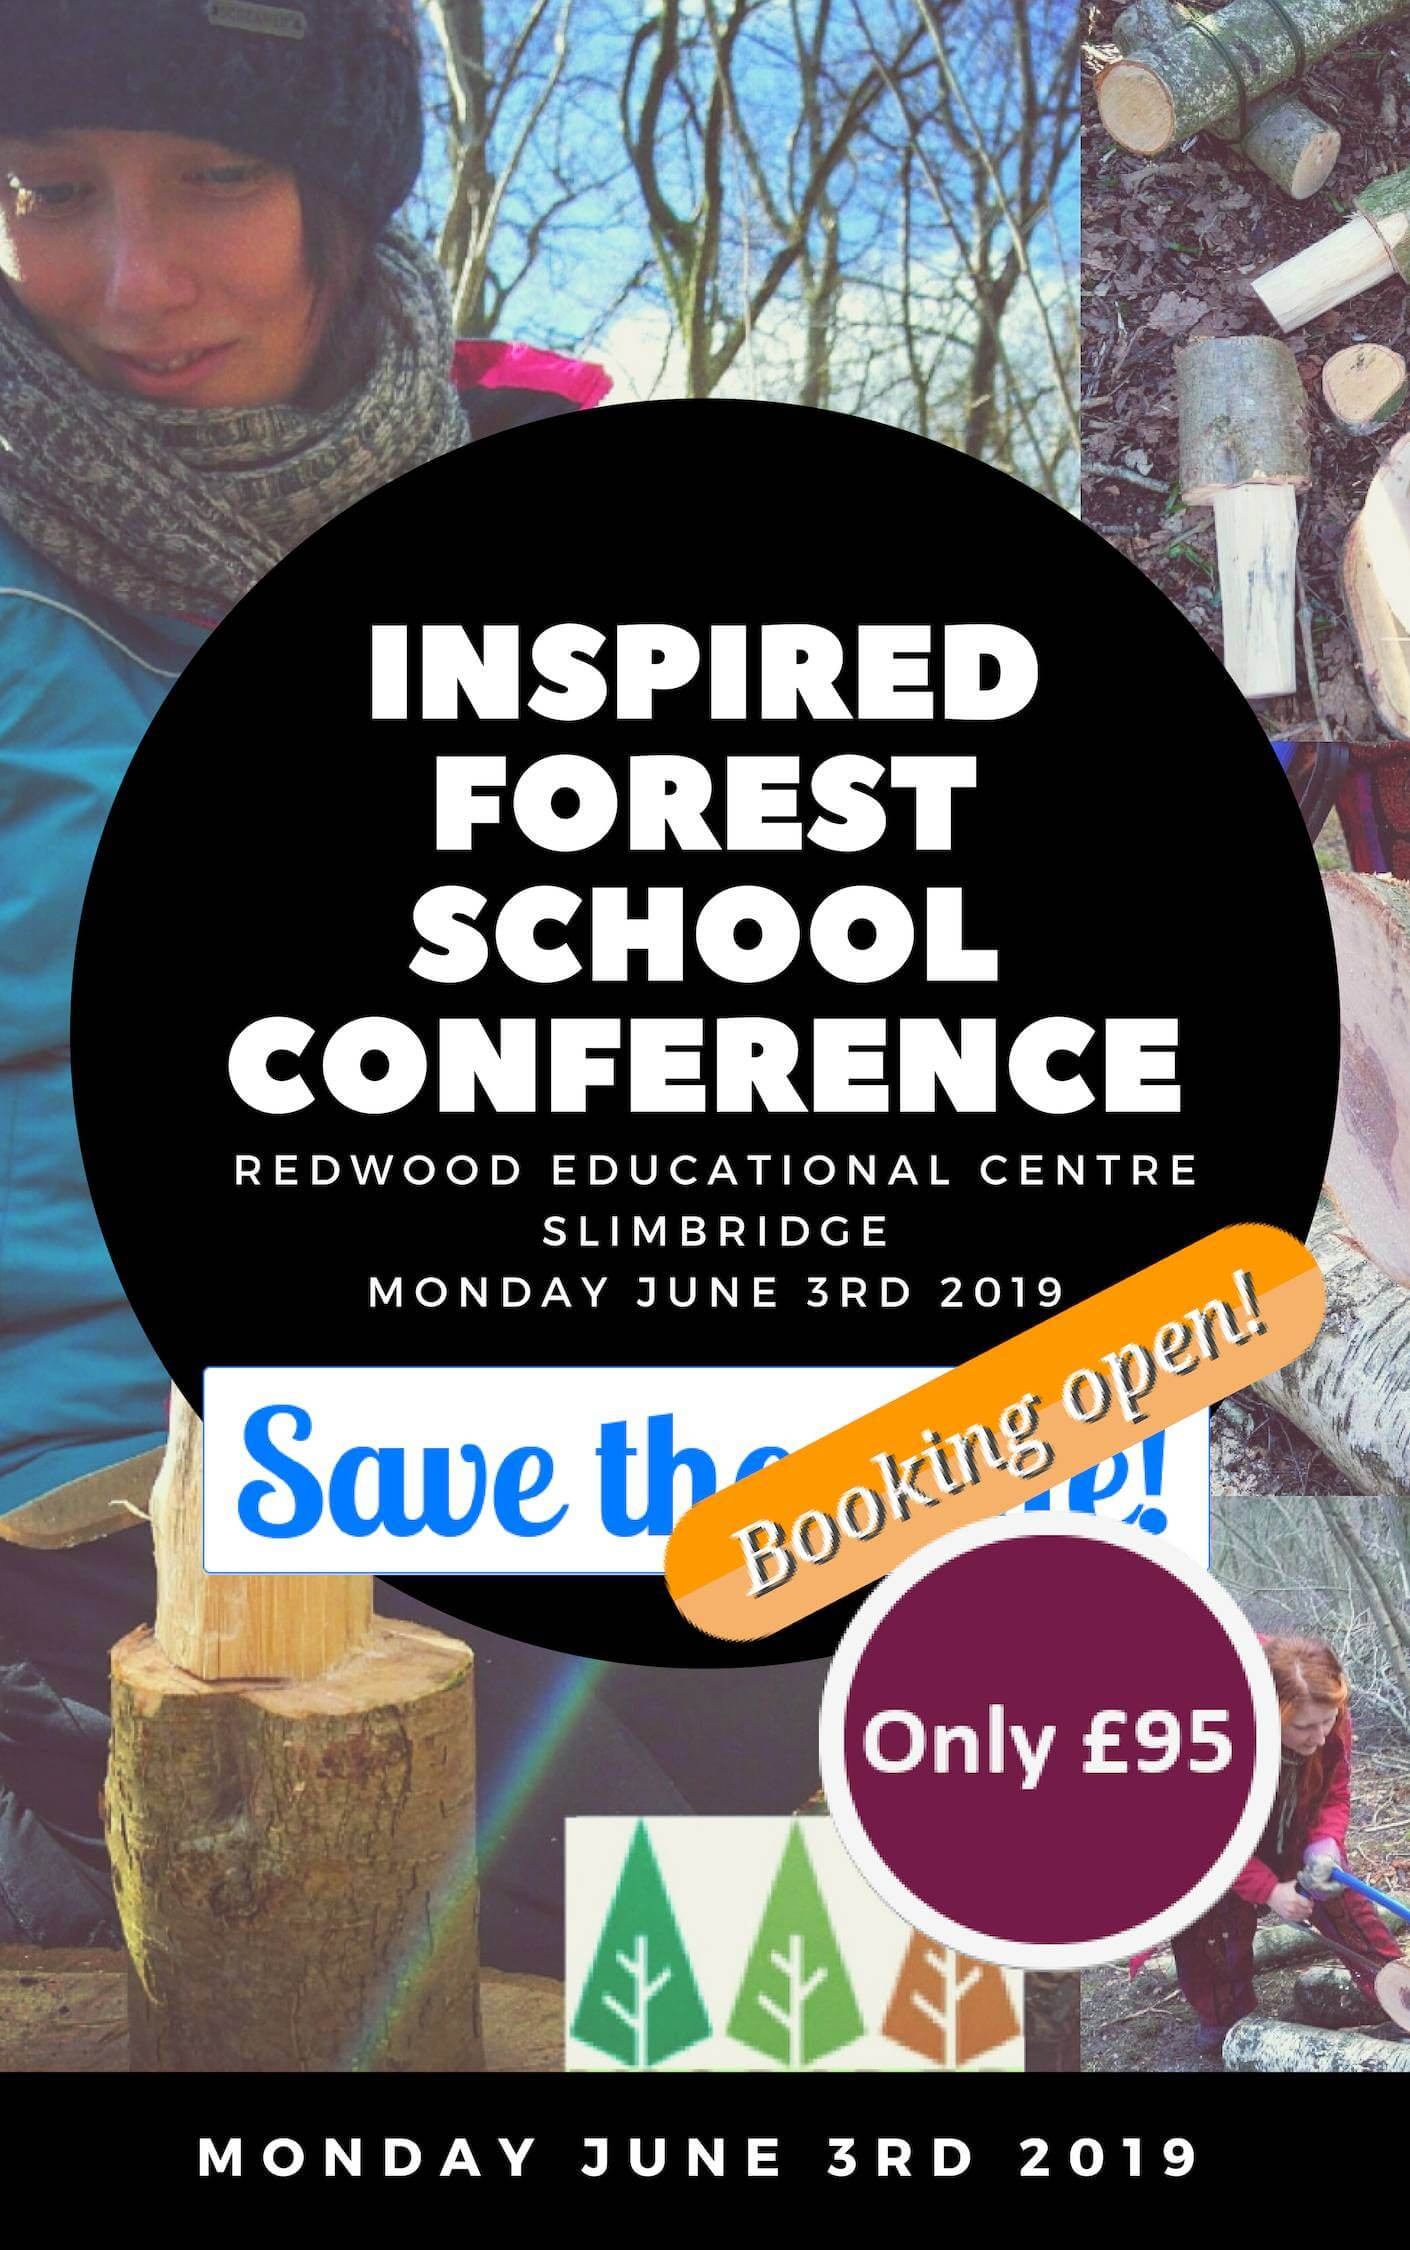 Inspired-Forest-School-HANDBOOK-2 Forest School Conference 2019